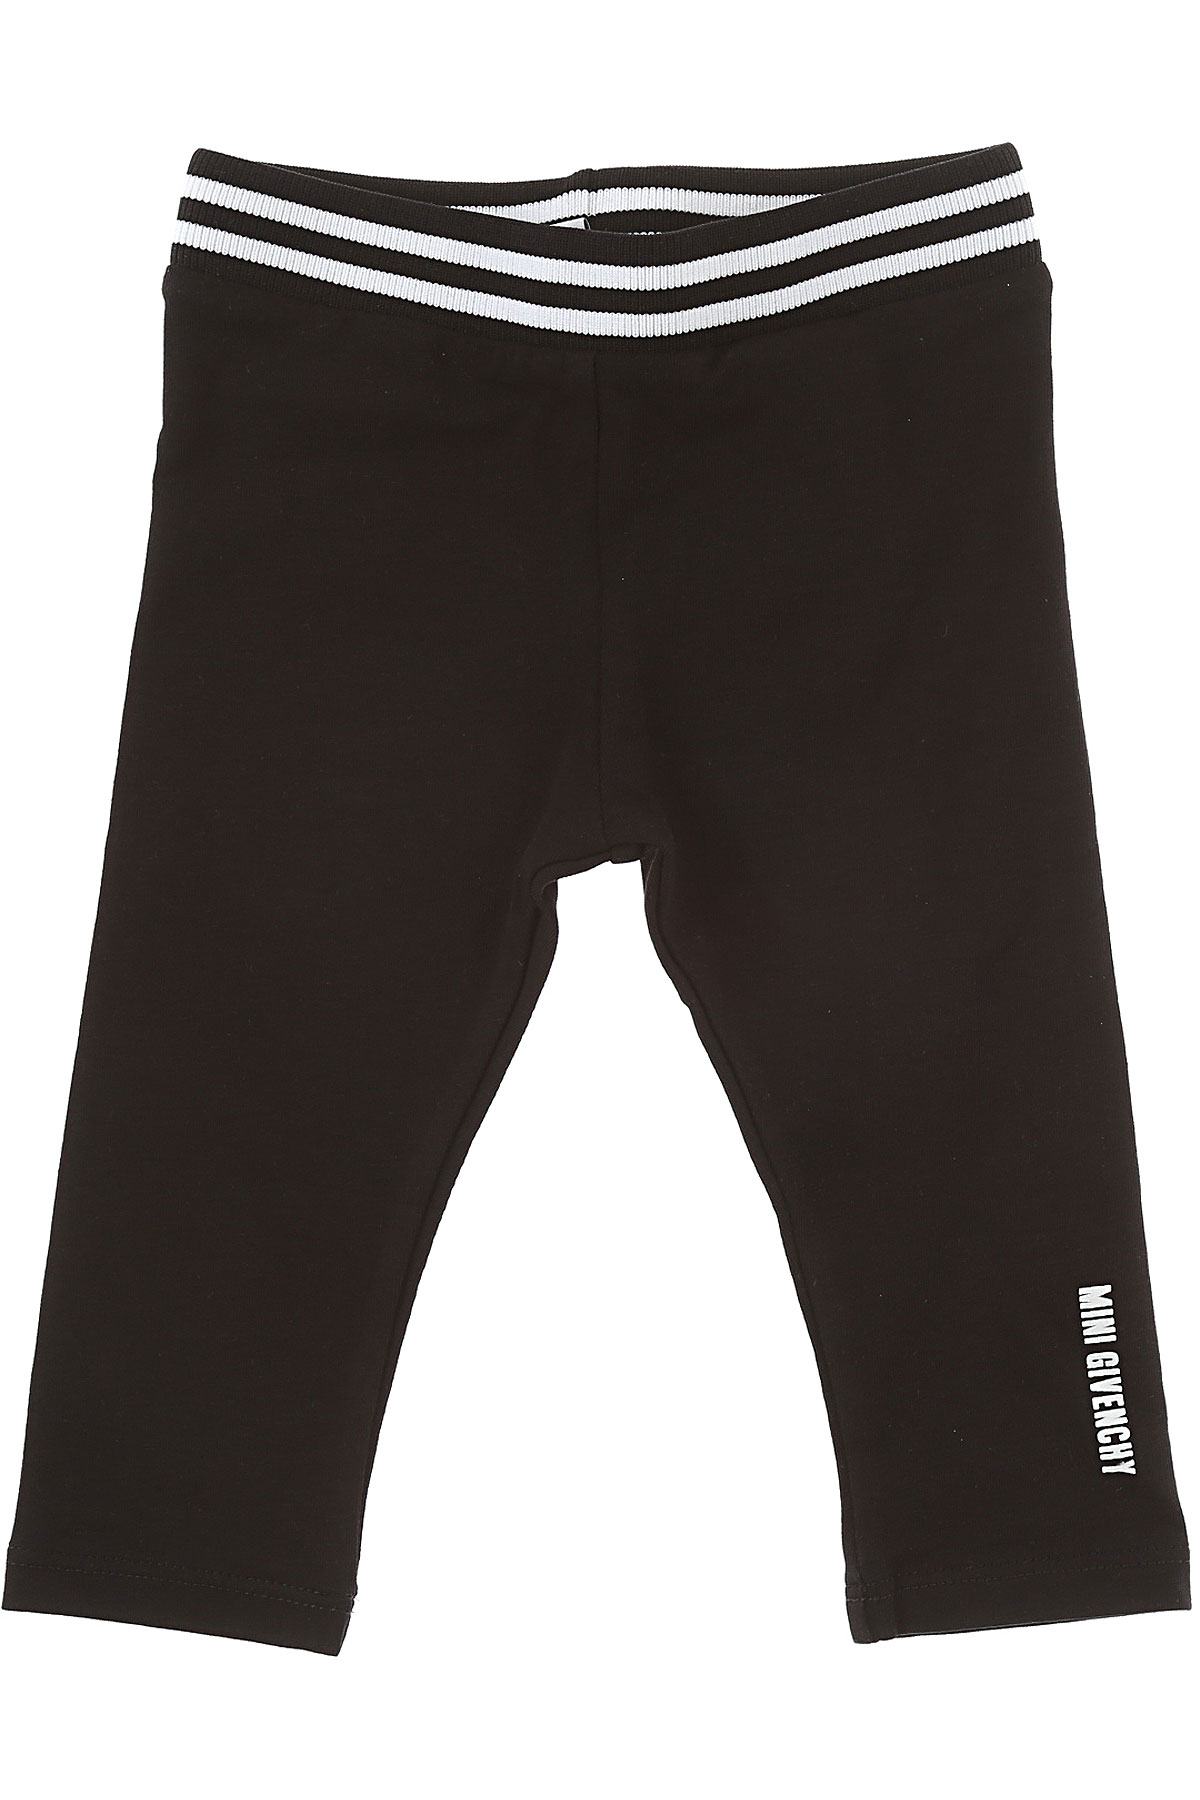 Image of Givenchy Baby Pants for Girls, Black, Cotton, 2017, 12M 18M 2Y 3Y 6M 9M